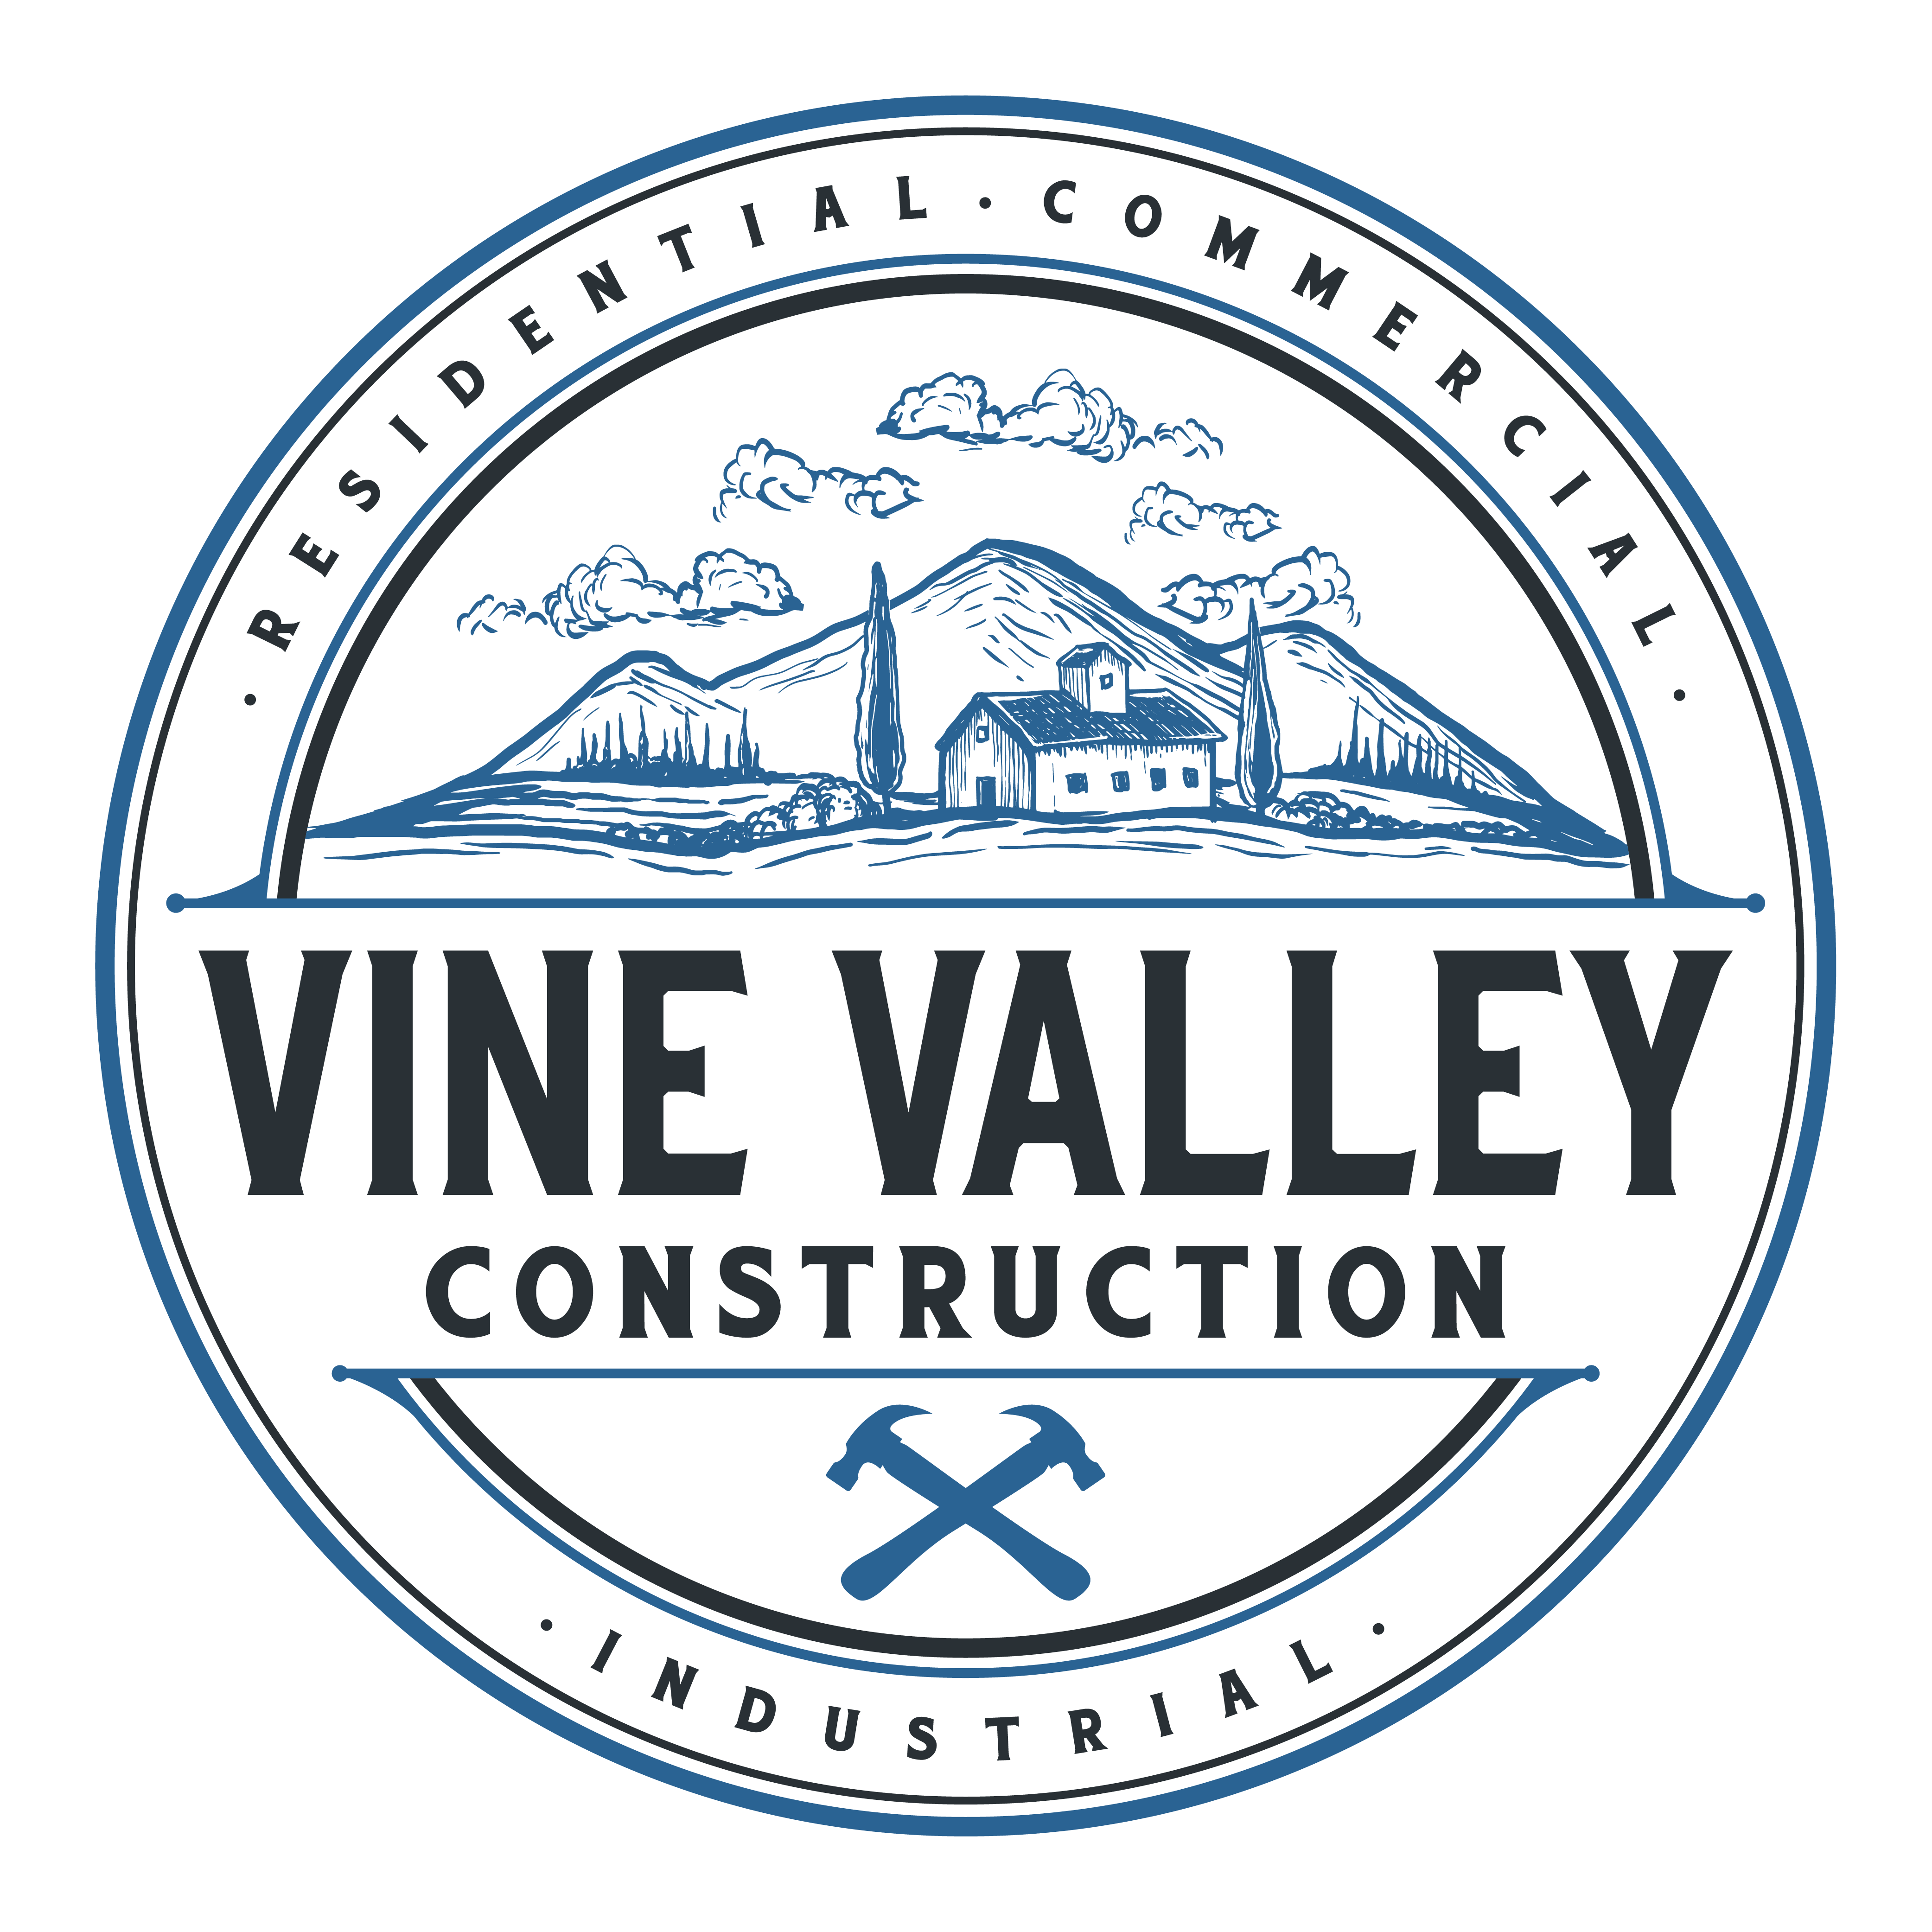 Vine Valley Construction